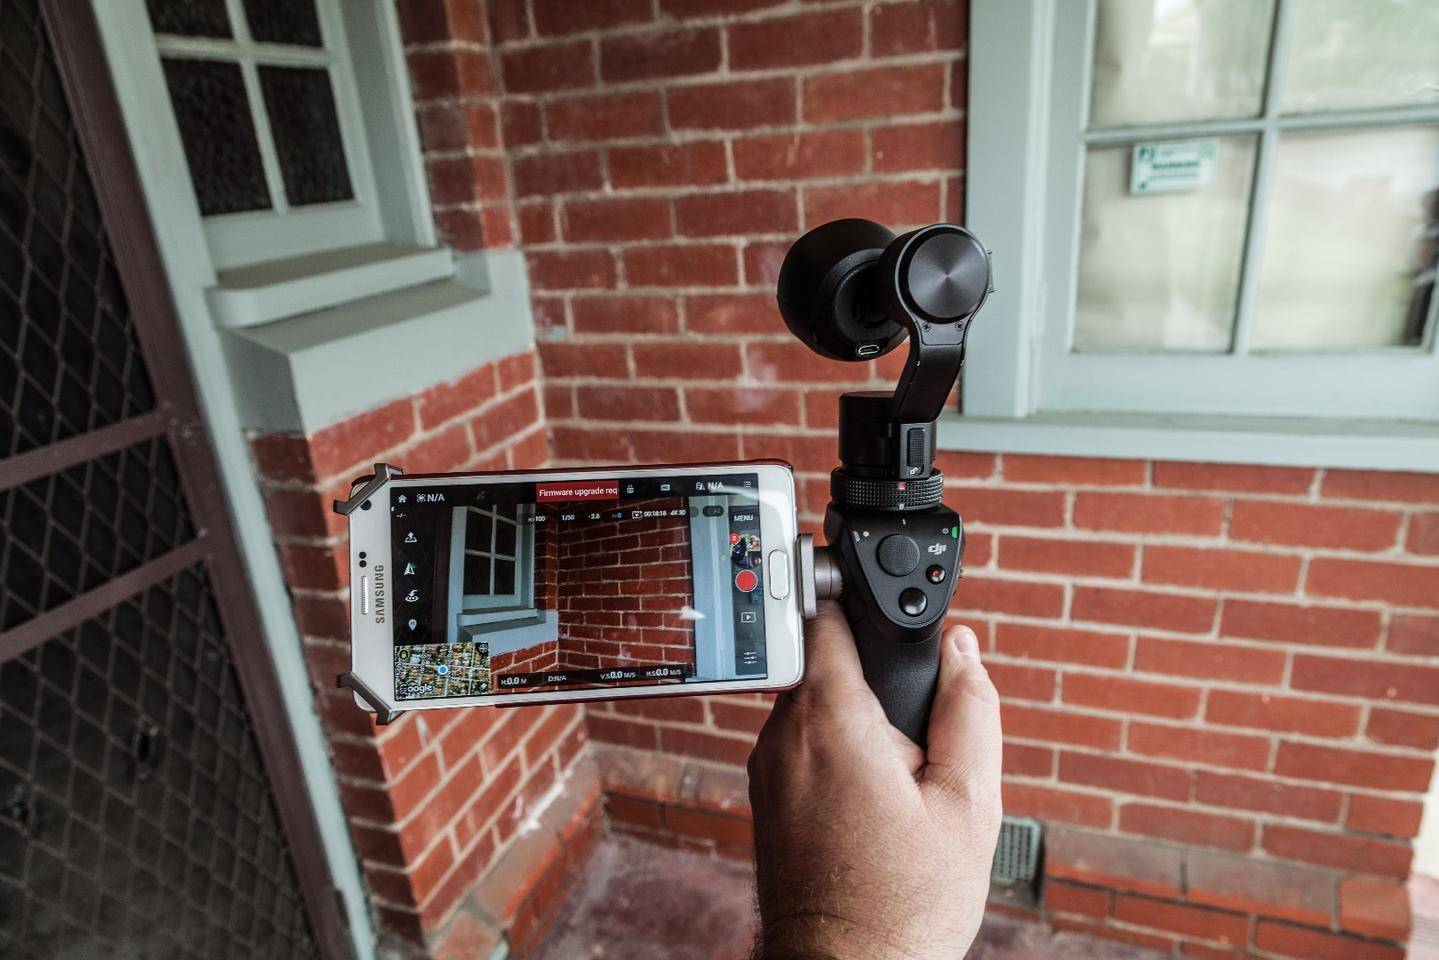 DJI's Osmo - three axis stabilization gives you smooth action shots. Or very smooth shots of brick walls.